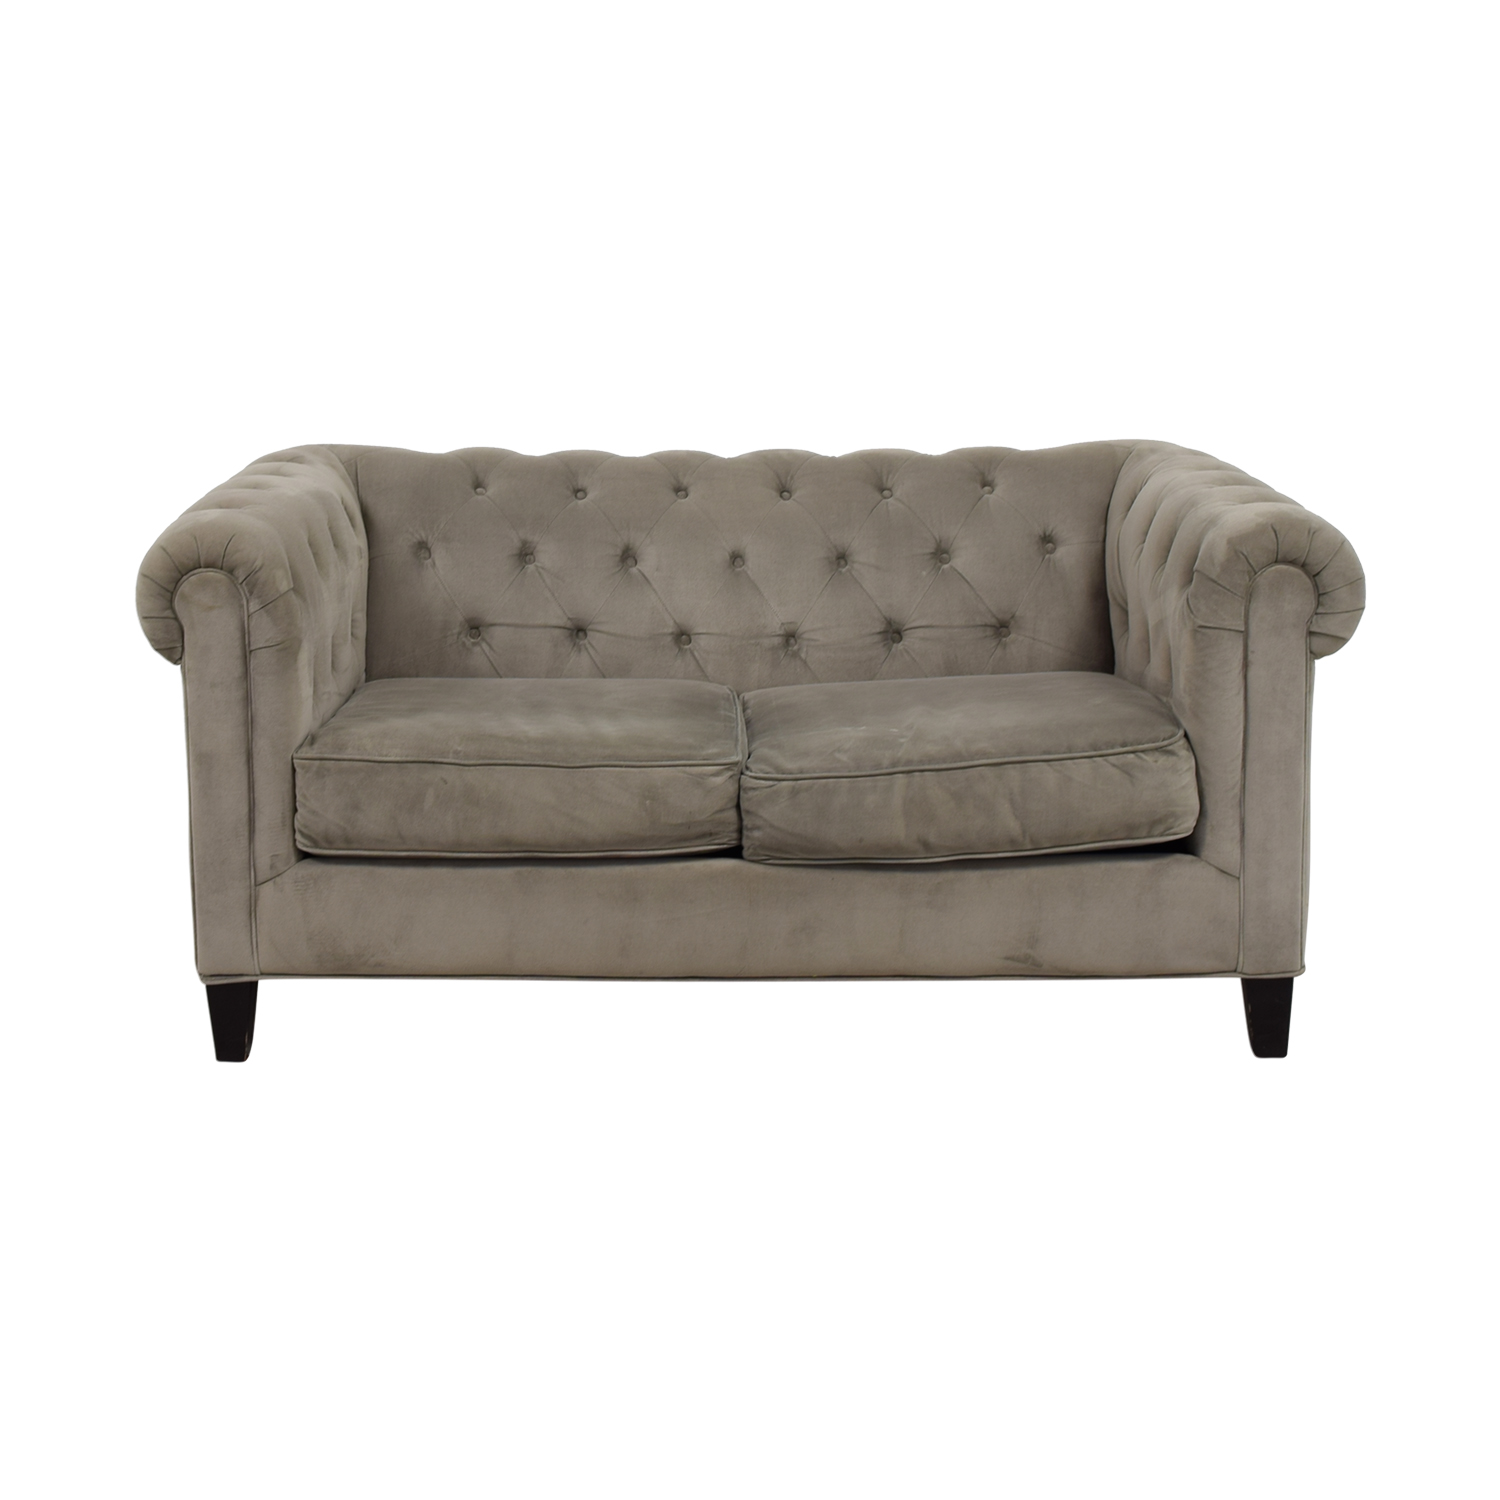 Macy's Gray Velvet Sofa sale